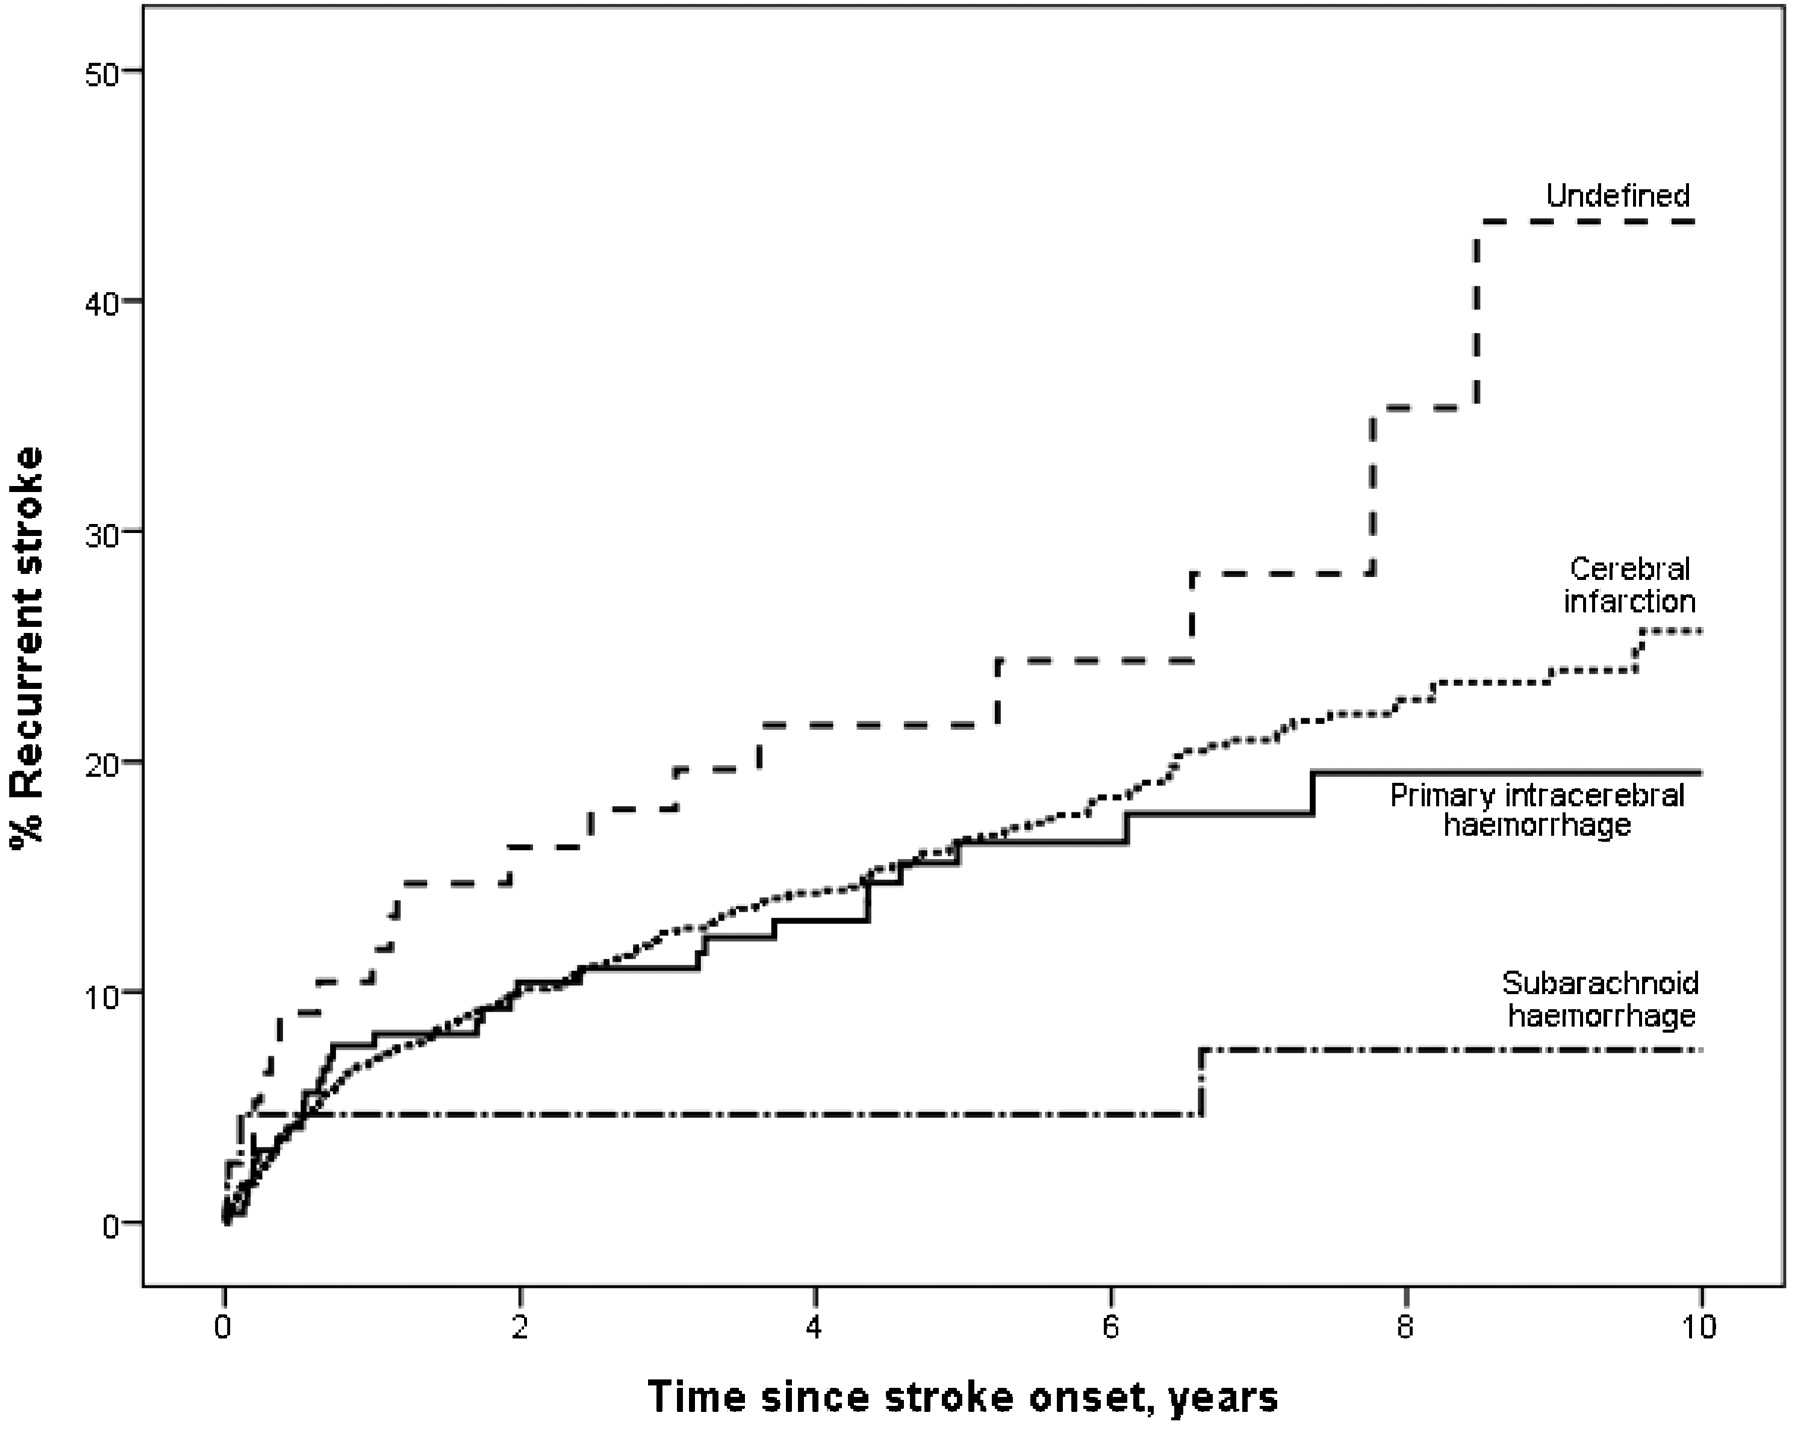 Frequency and predictors for the risk of stroke recurrence